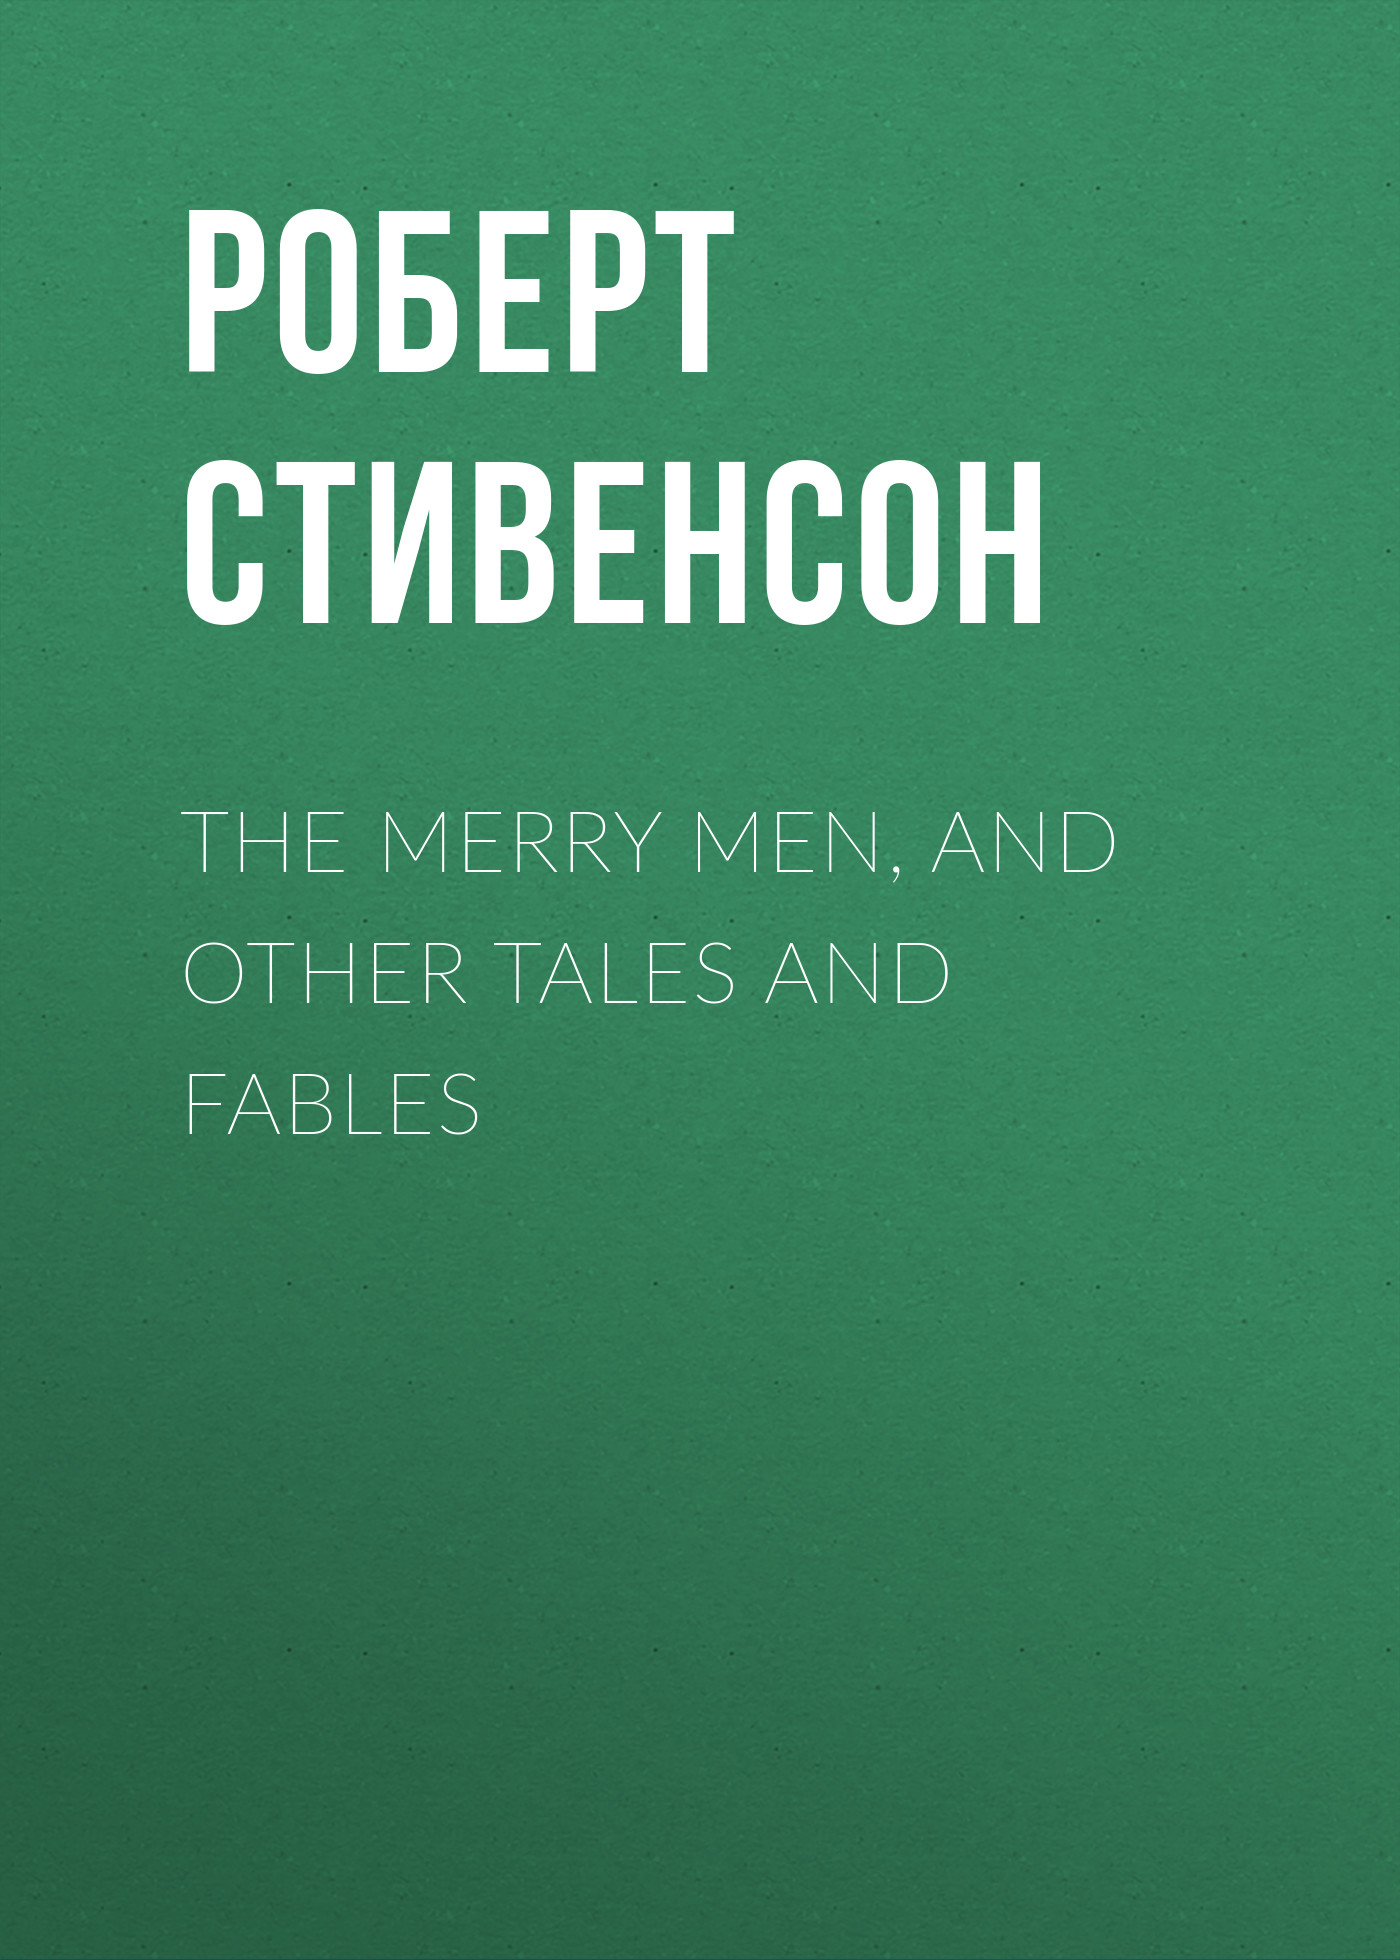 Роберт Льюис Стивенсон The Merry Men, and Other Tales and Fables роберт льюис стивенсон fables